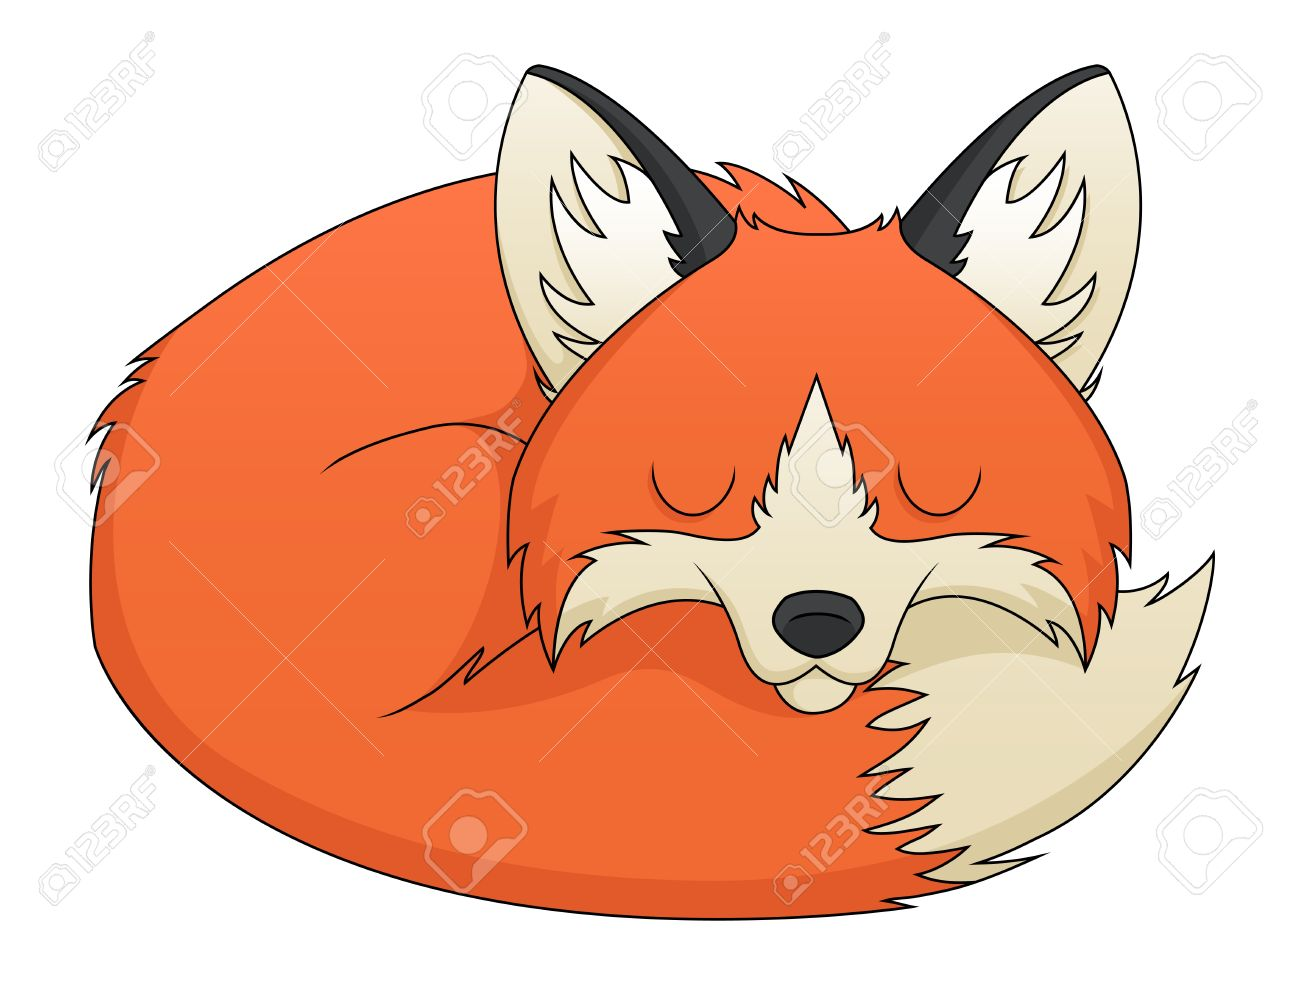 An illustration depicting a sleeping cute red fox cartoon Stock Vector - 18203881